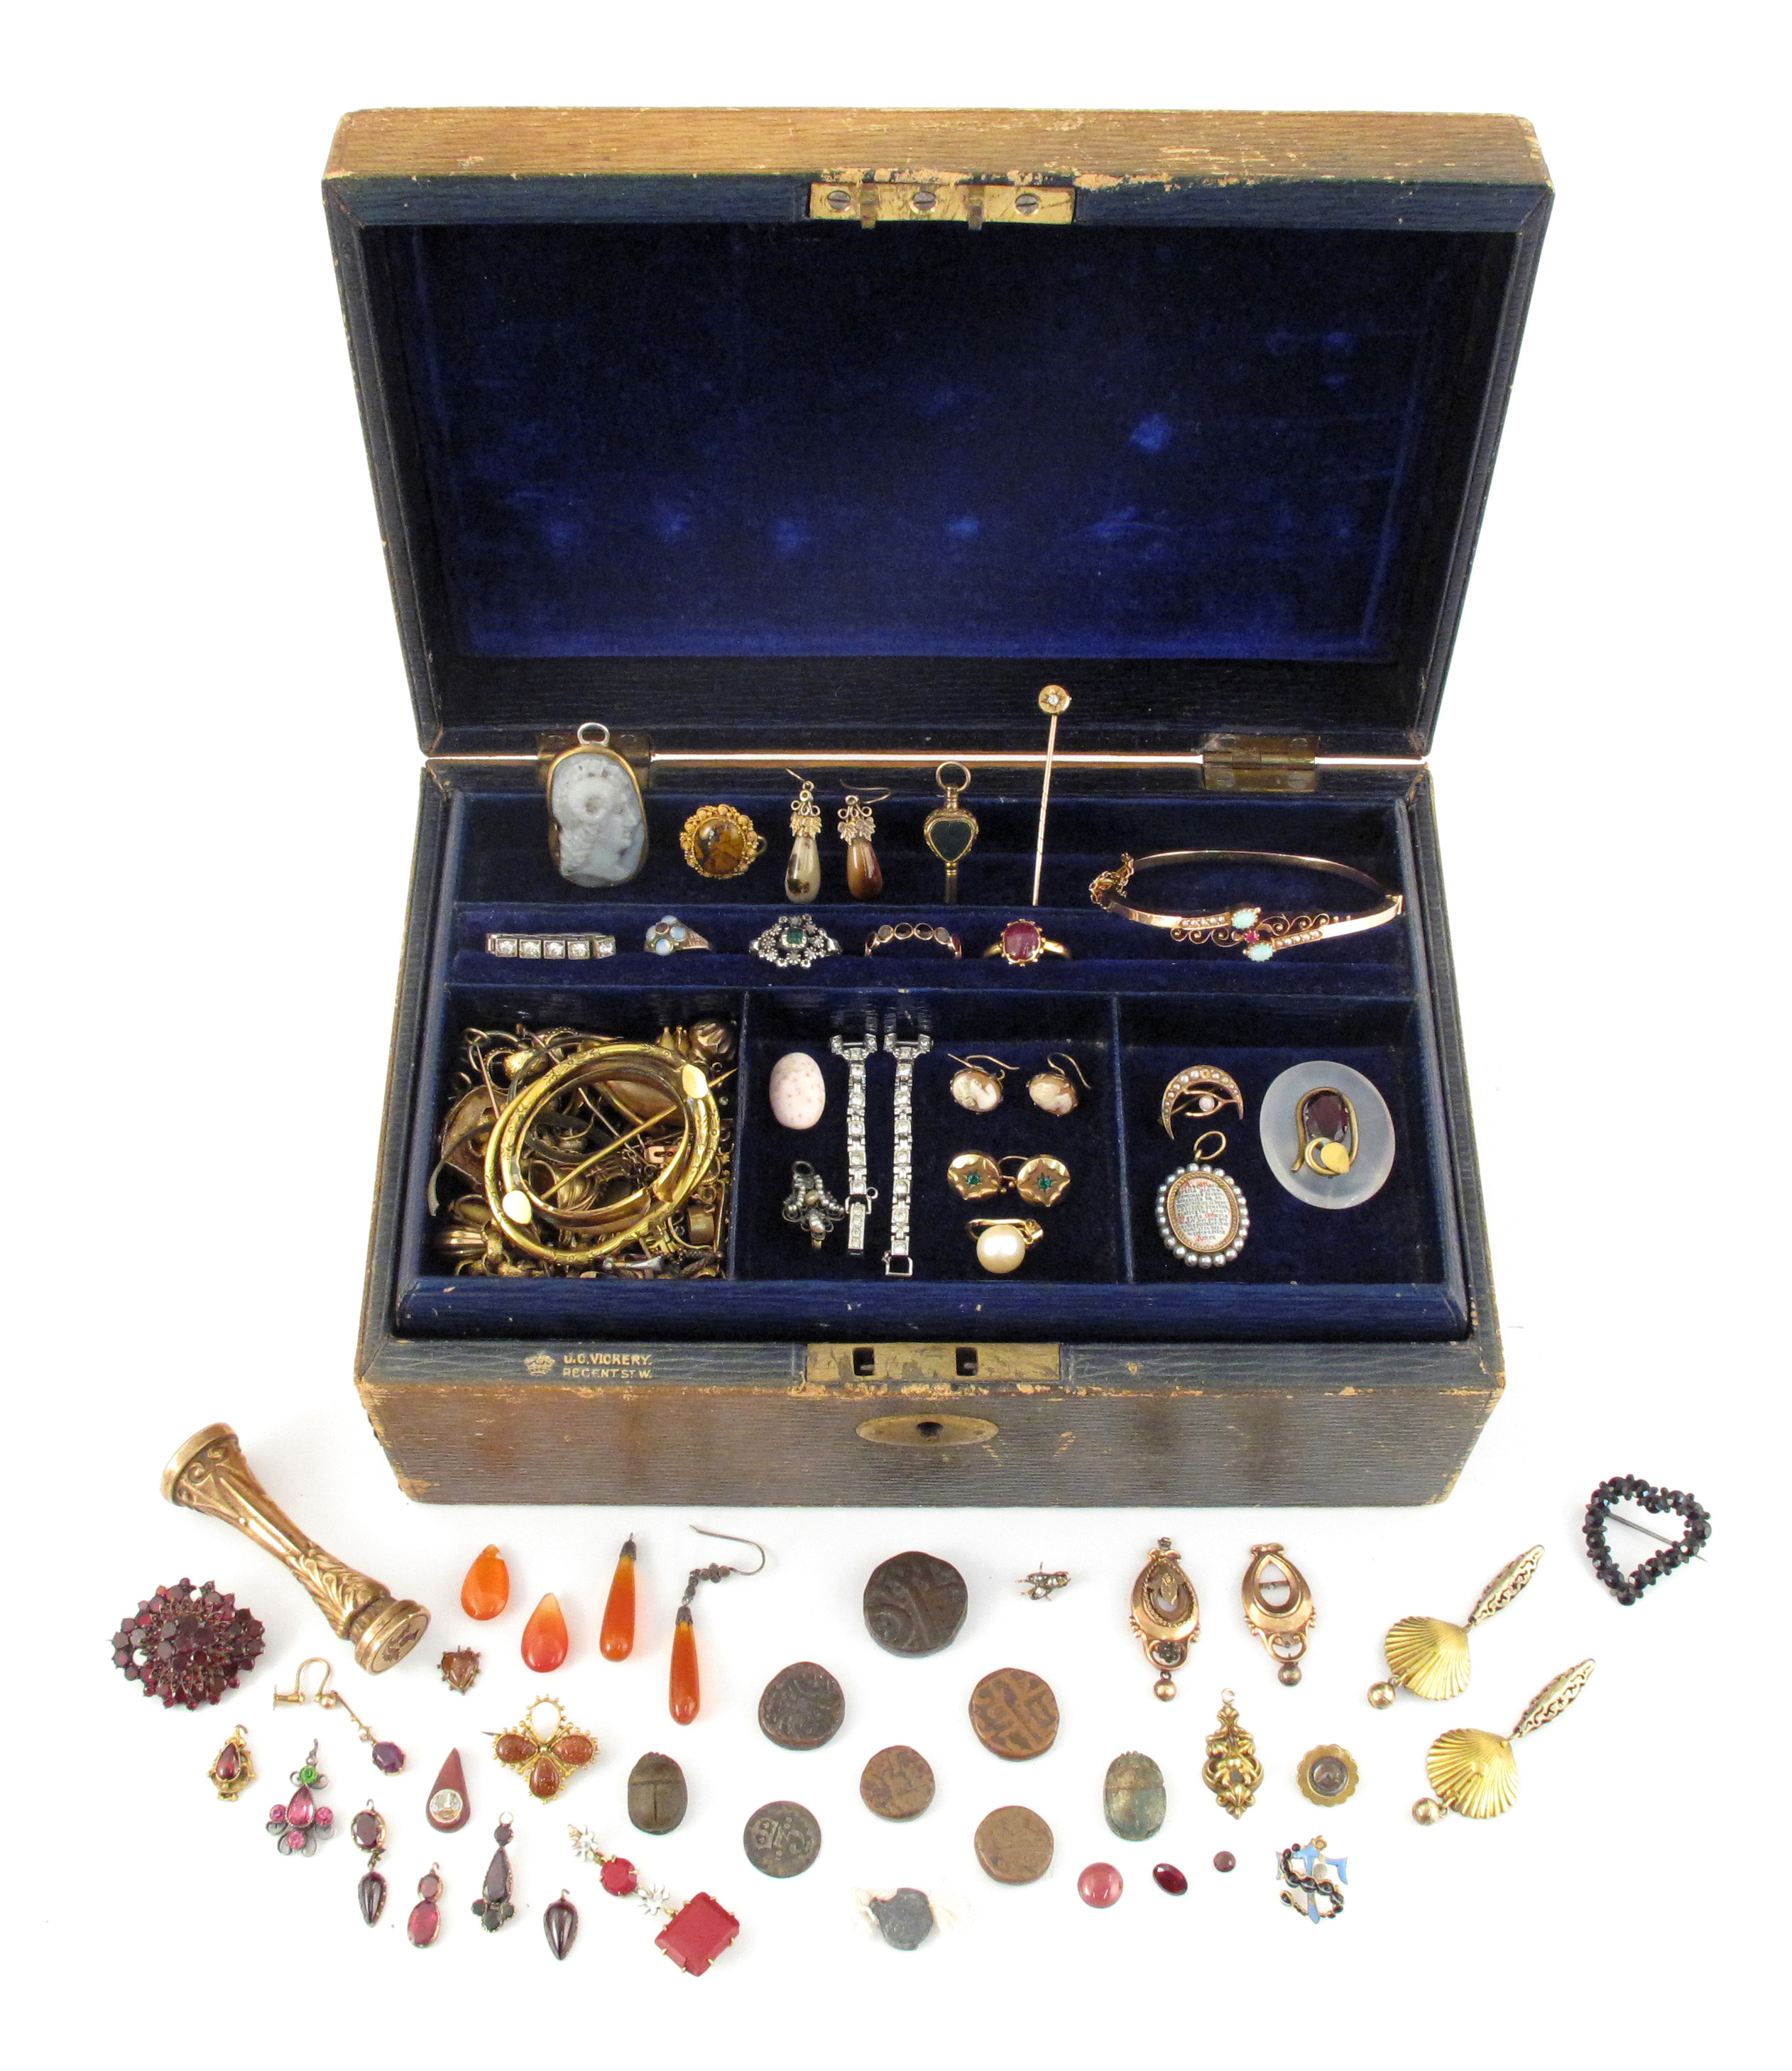 A jewellery casket with lift-out draw containing various items of jewellery